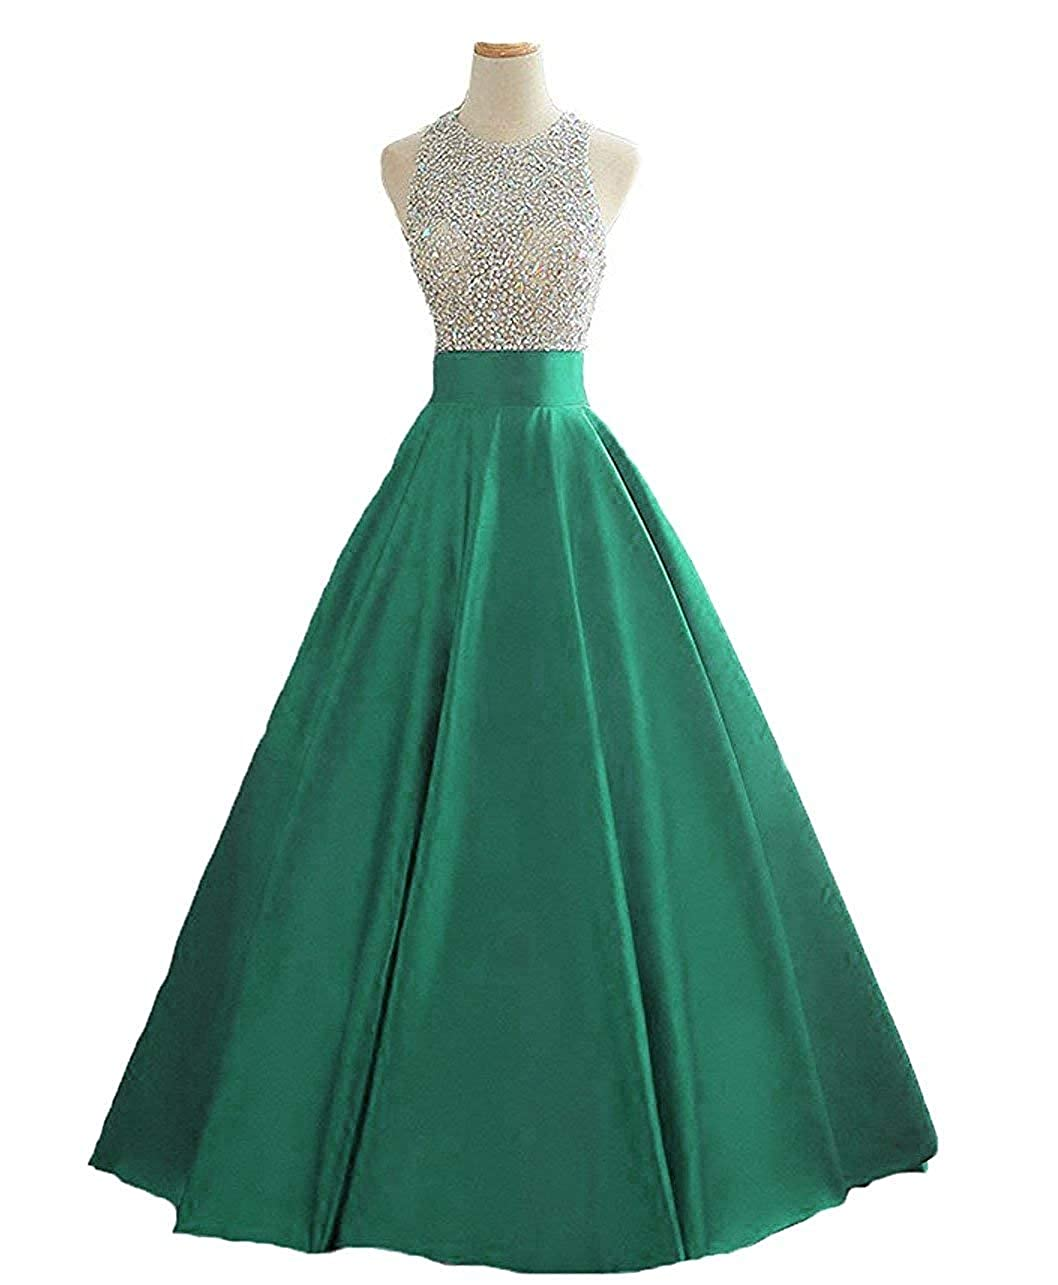 Green 2 Dressytailor Hater Aline Long Sequined Evening Party Gown Beaded Formal Prom Dress with Pockets